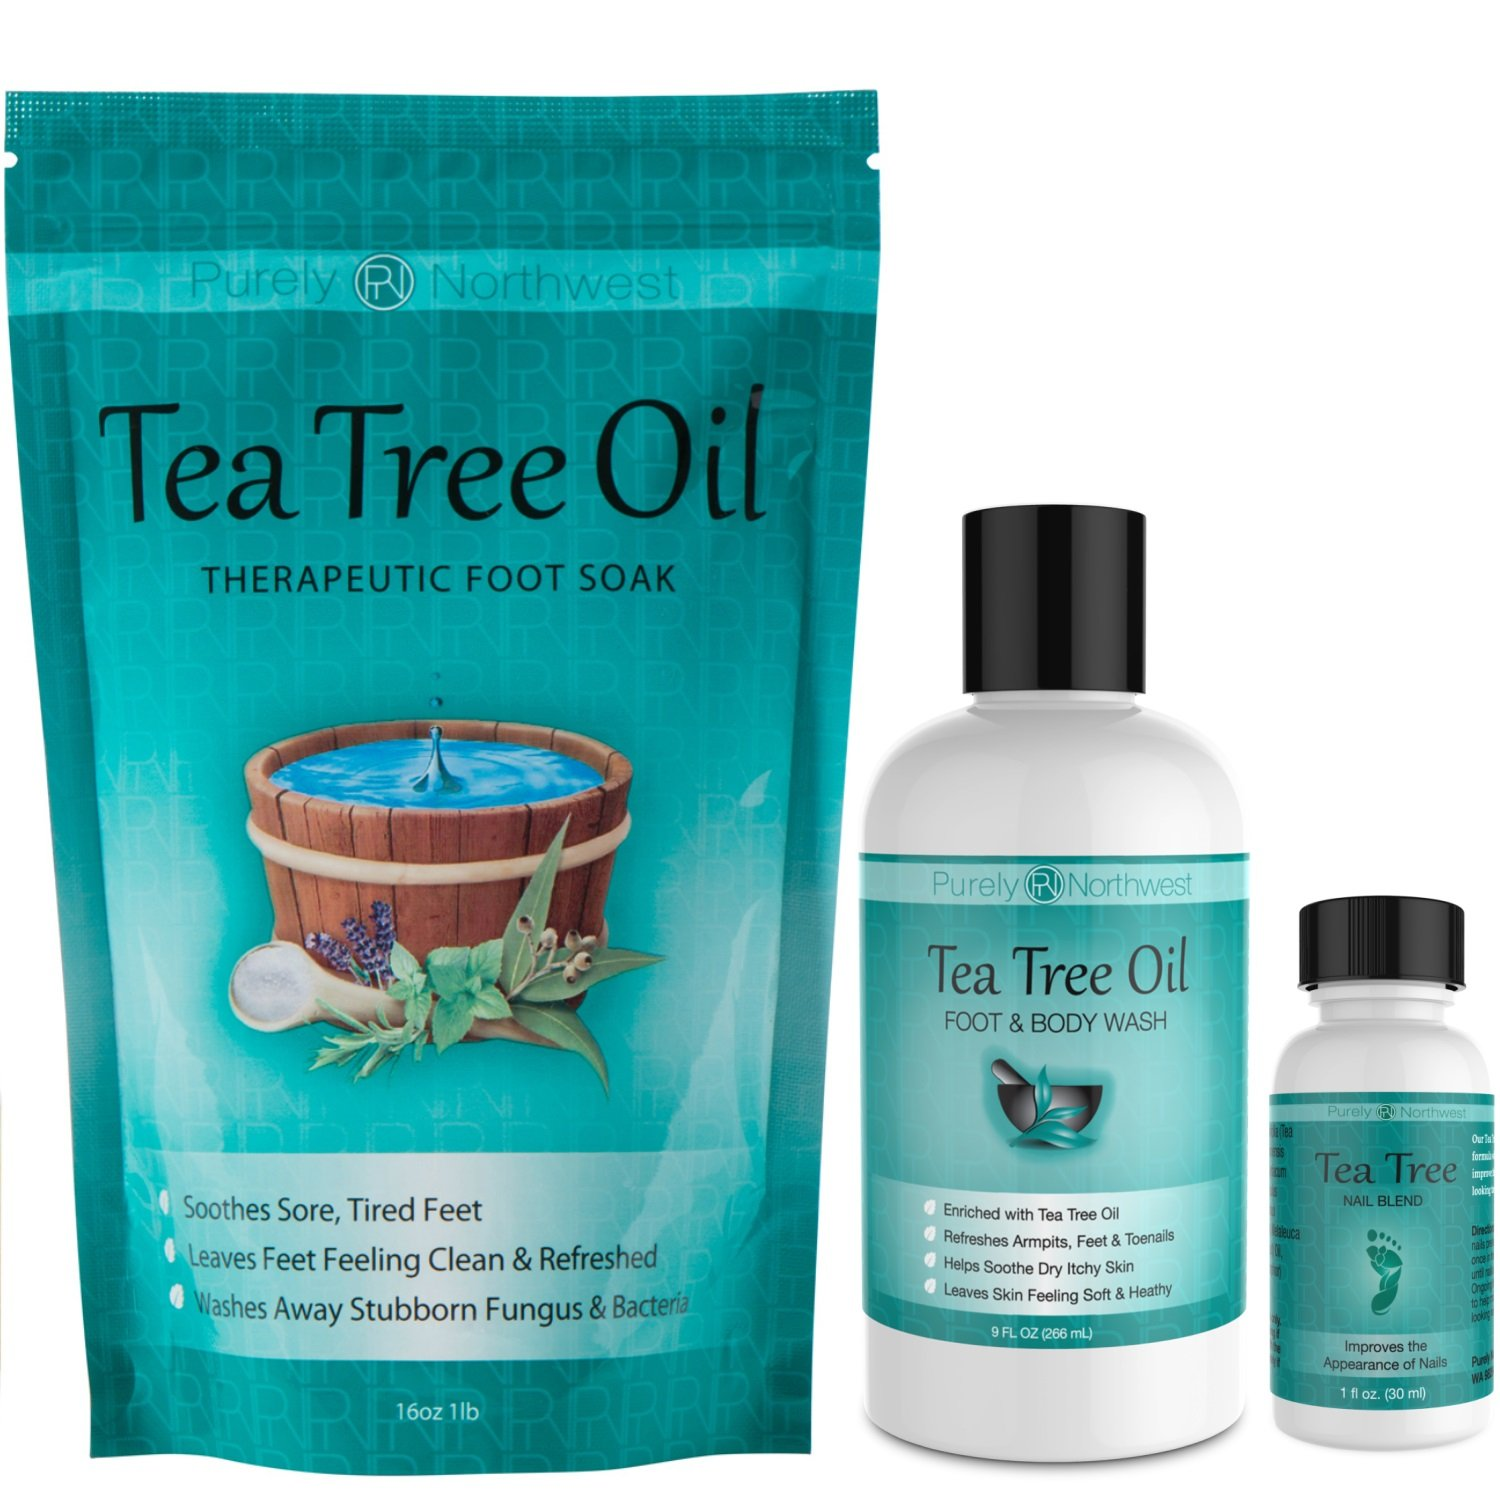 Purely Northwest Foot and Toenail Kit with 16 oz Tea Tree Oil Foot Soak, 9 fl oz Antifungal Tea Tree Oil Foot & Body Wash and 1 fl oz Tea Tree Nail Blend. by Purely Northwest